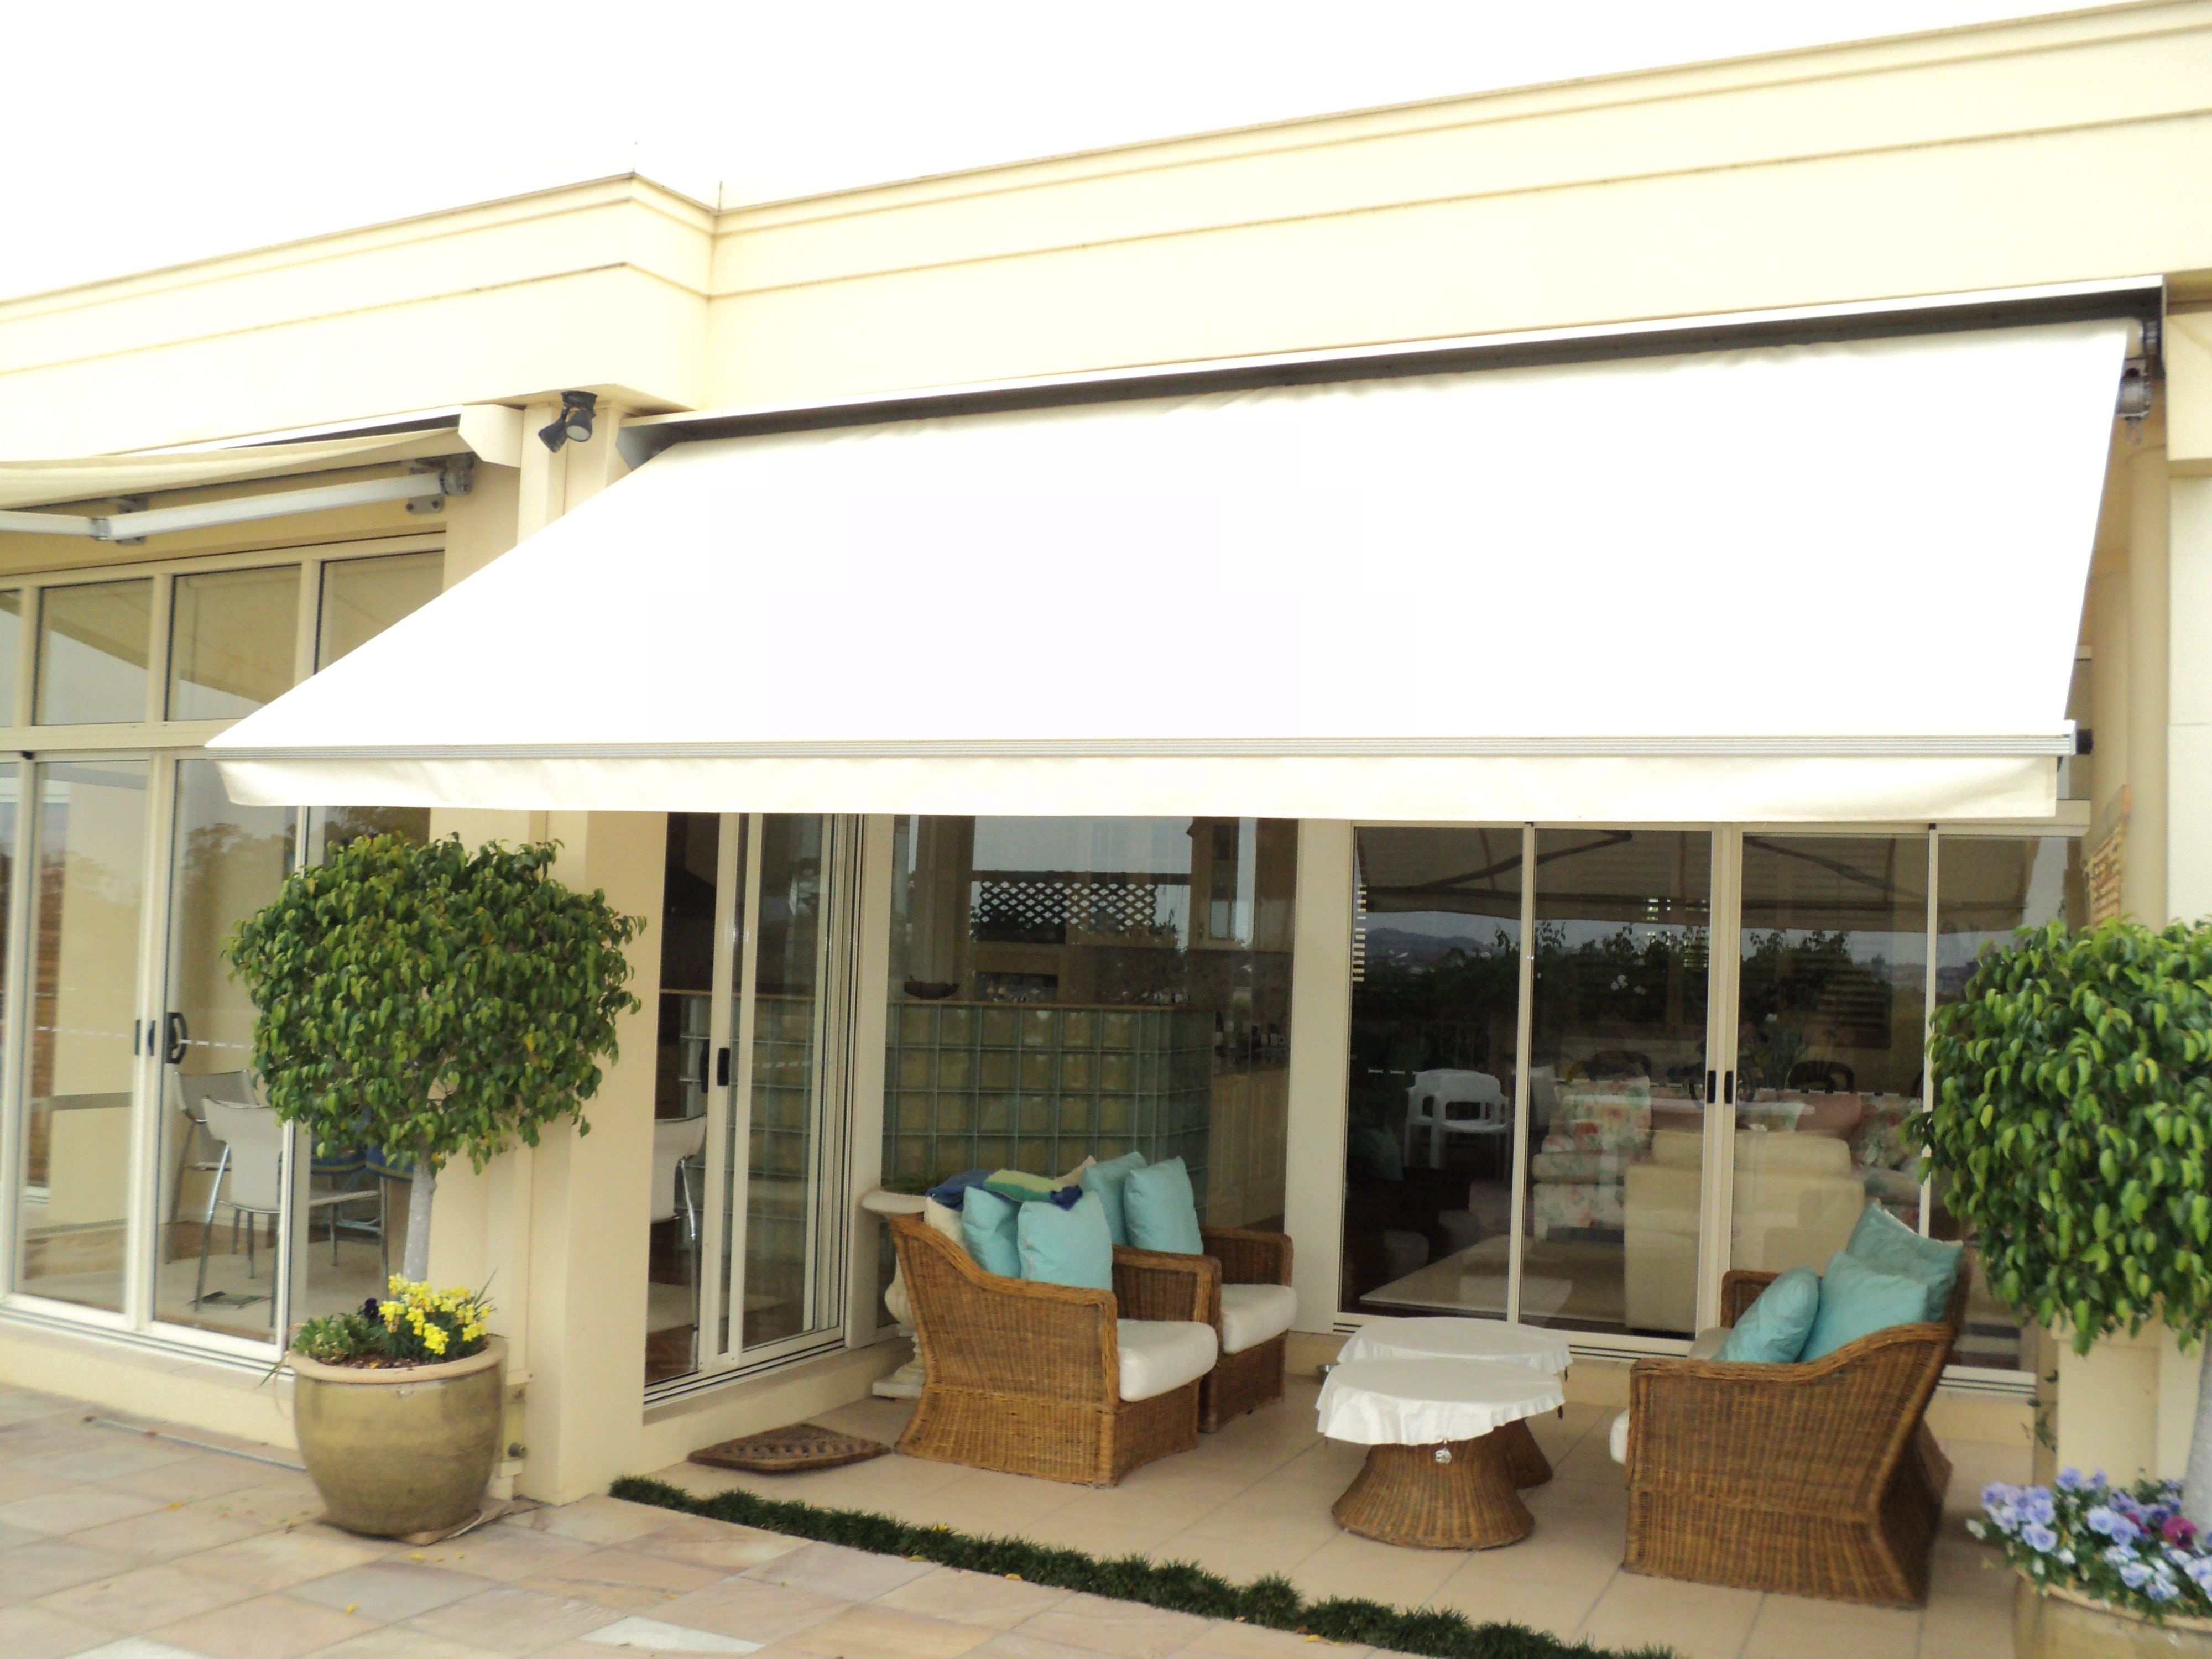 Roll Out Awning Outdoor Awnings Decks Patios Deck